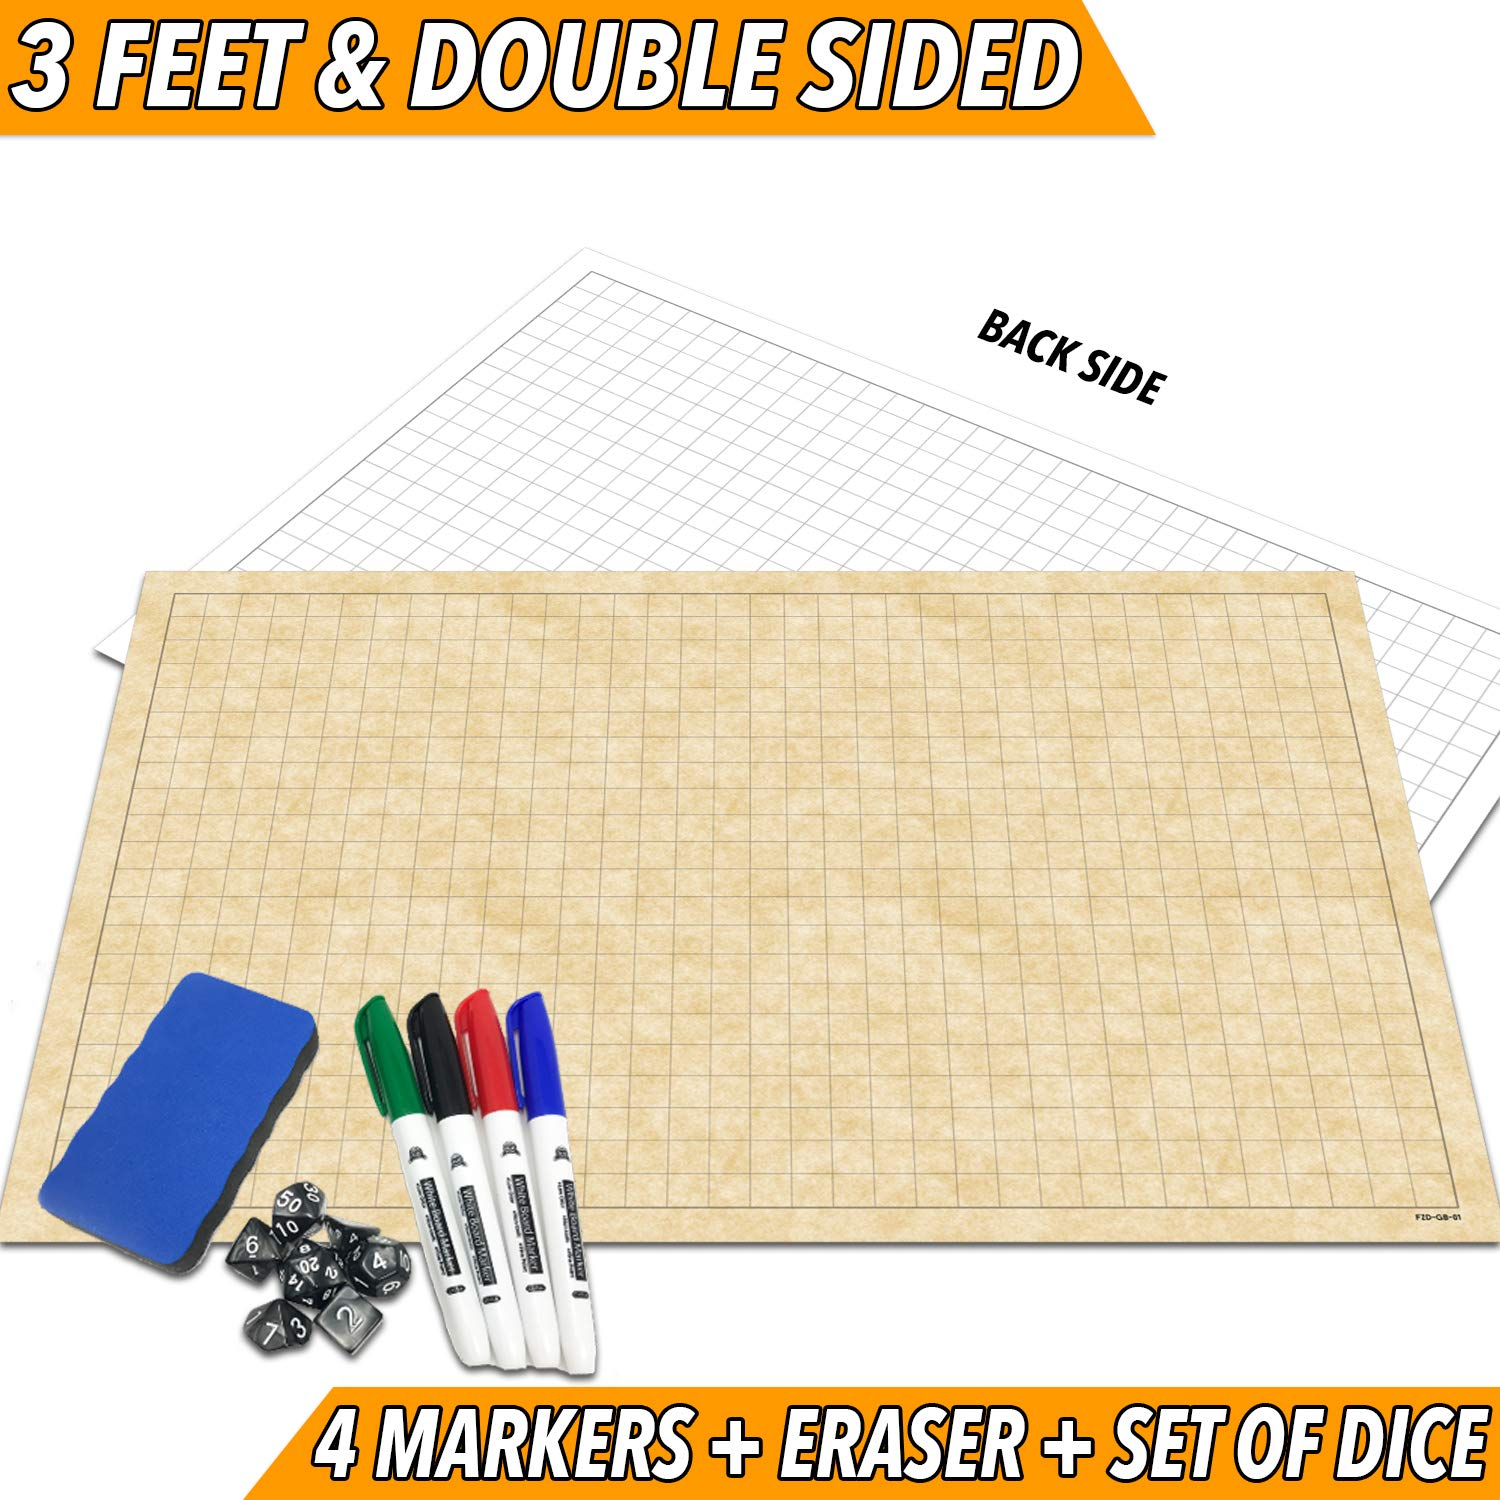 RPG Battle Grid Game Mat   24'' x 36'' Double Sided   w/Markers, Eraser & 7pc Polyhedral Dice Set   Table Top Role Playing Map - DnD Role Play - Dungeons and Dragons Maps Tiles - Tabletop Gaming Mats by Fat Zebra Designs (Image #1)